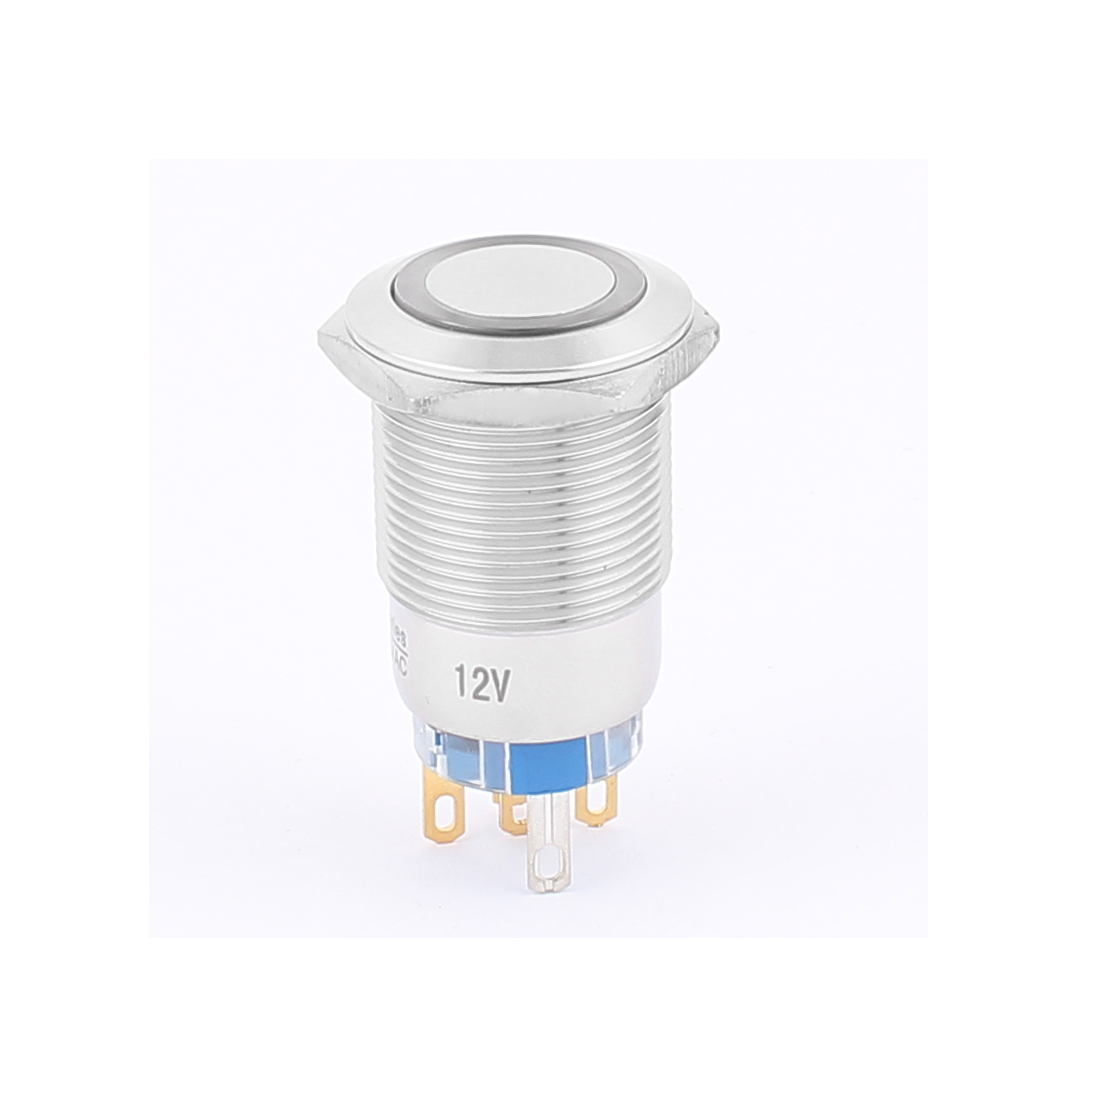 12V 19mm Dia Thread White LED Angle Eyes Latching Metal Pushbutton Switch